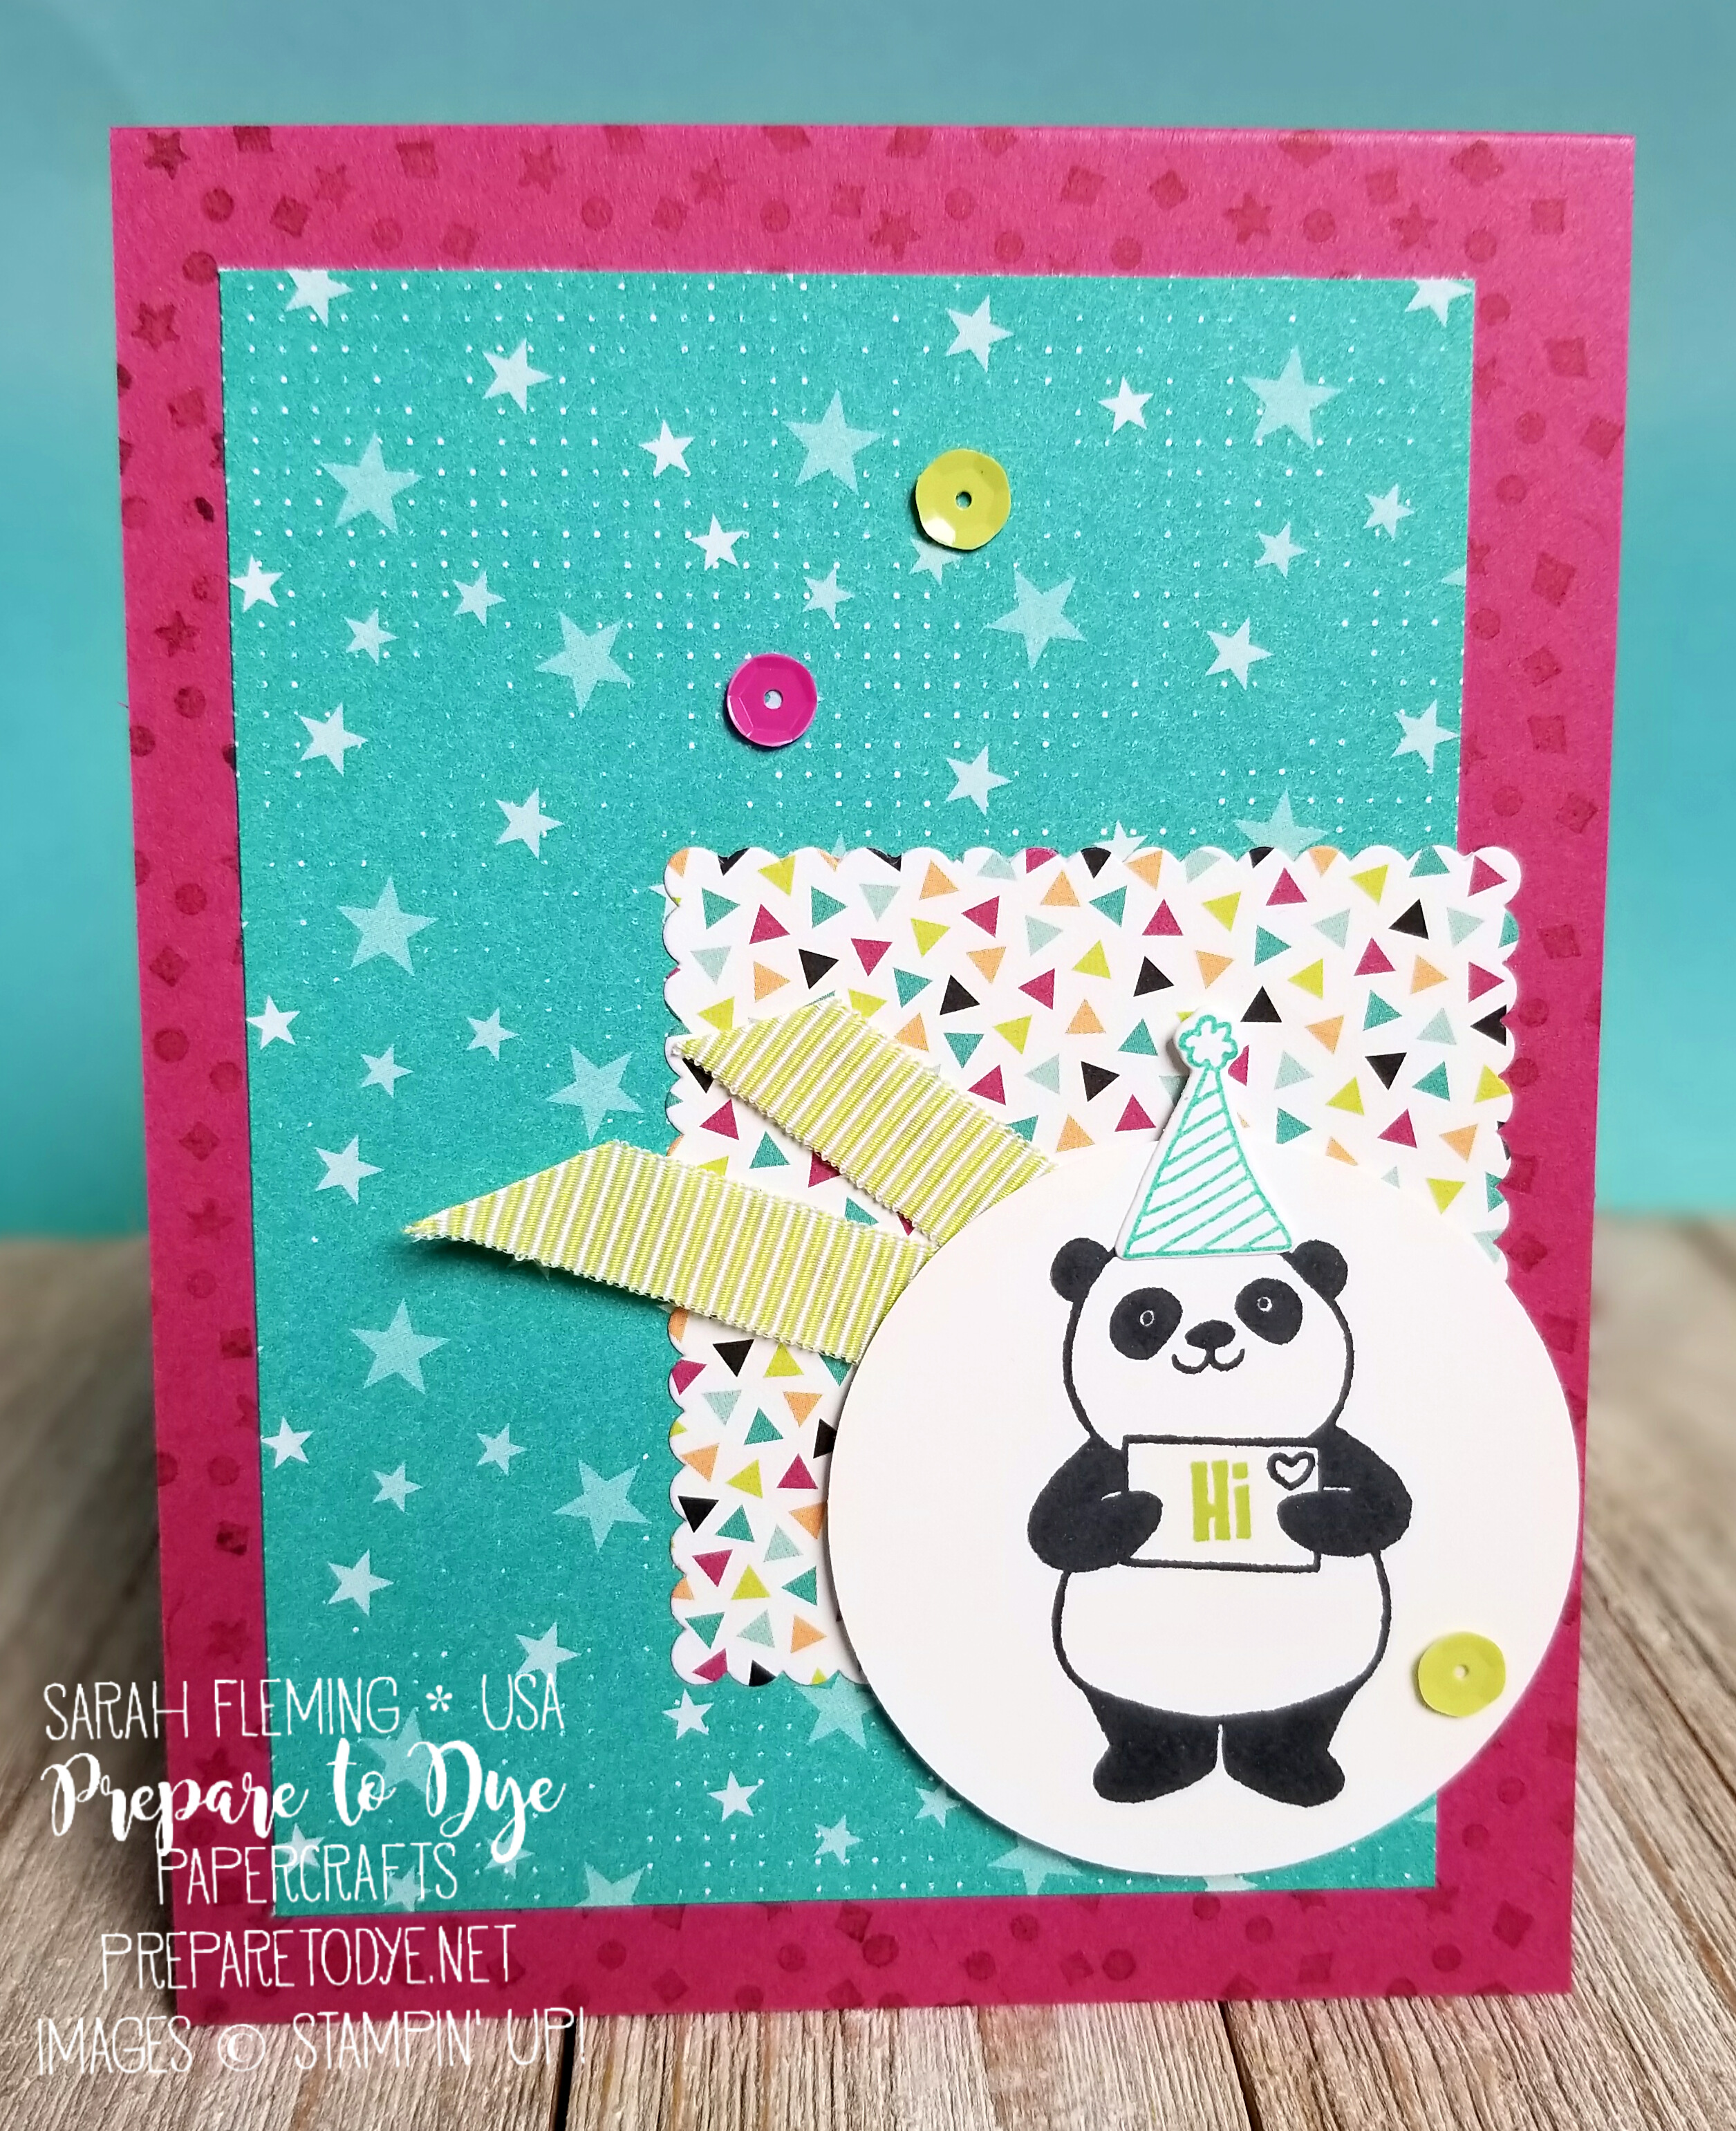 Stampin' Up! Party Pandas - free Sale-A-Bration stamp set - with Bubbles & Fizz paper - also free - and Picture Perfect Party paper - Sarah Fleming - Prepare to Dye Papercrafts